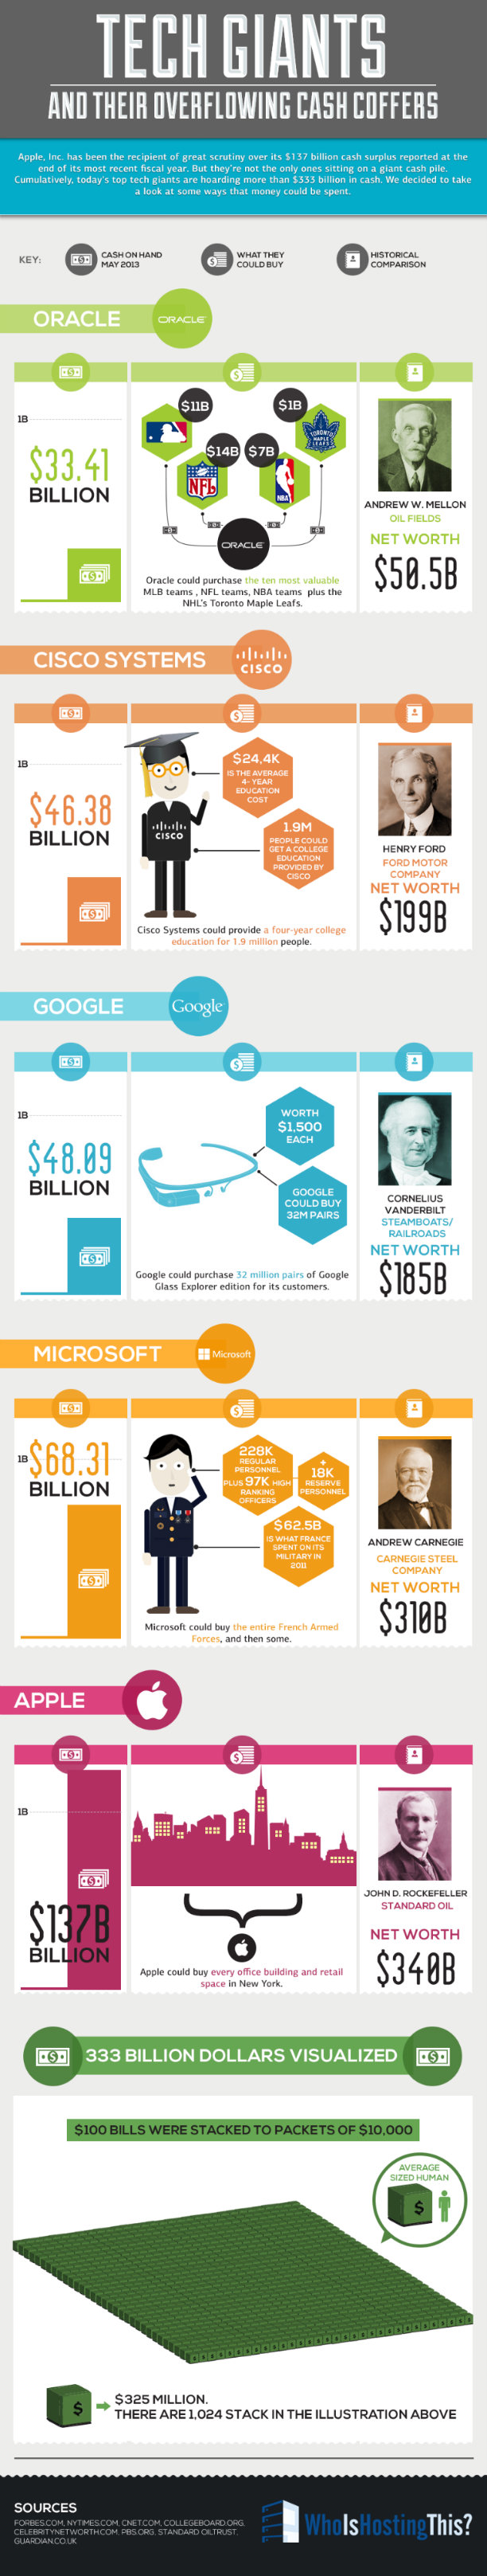 tech giants infographic